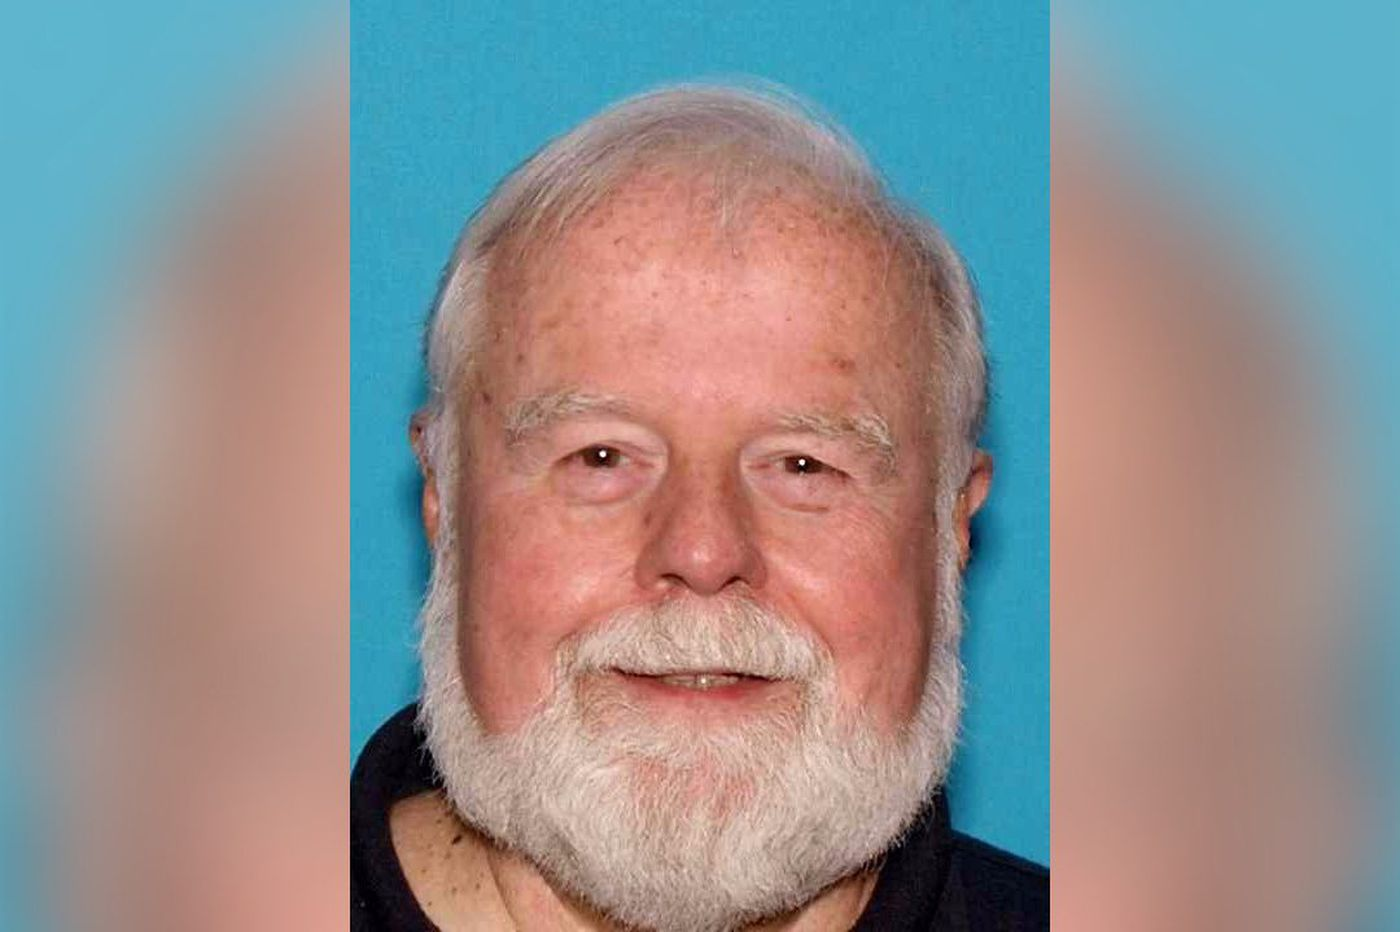 South Jersey pastor, 74, charged with sexually assaulting minors